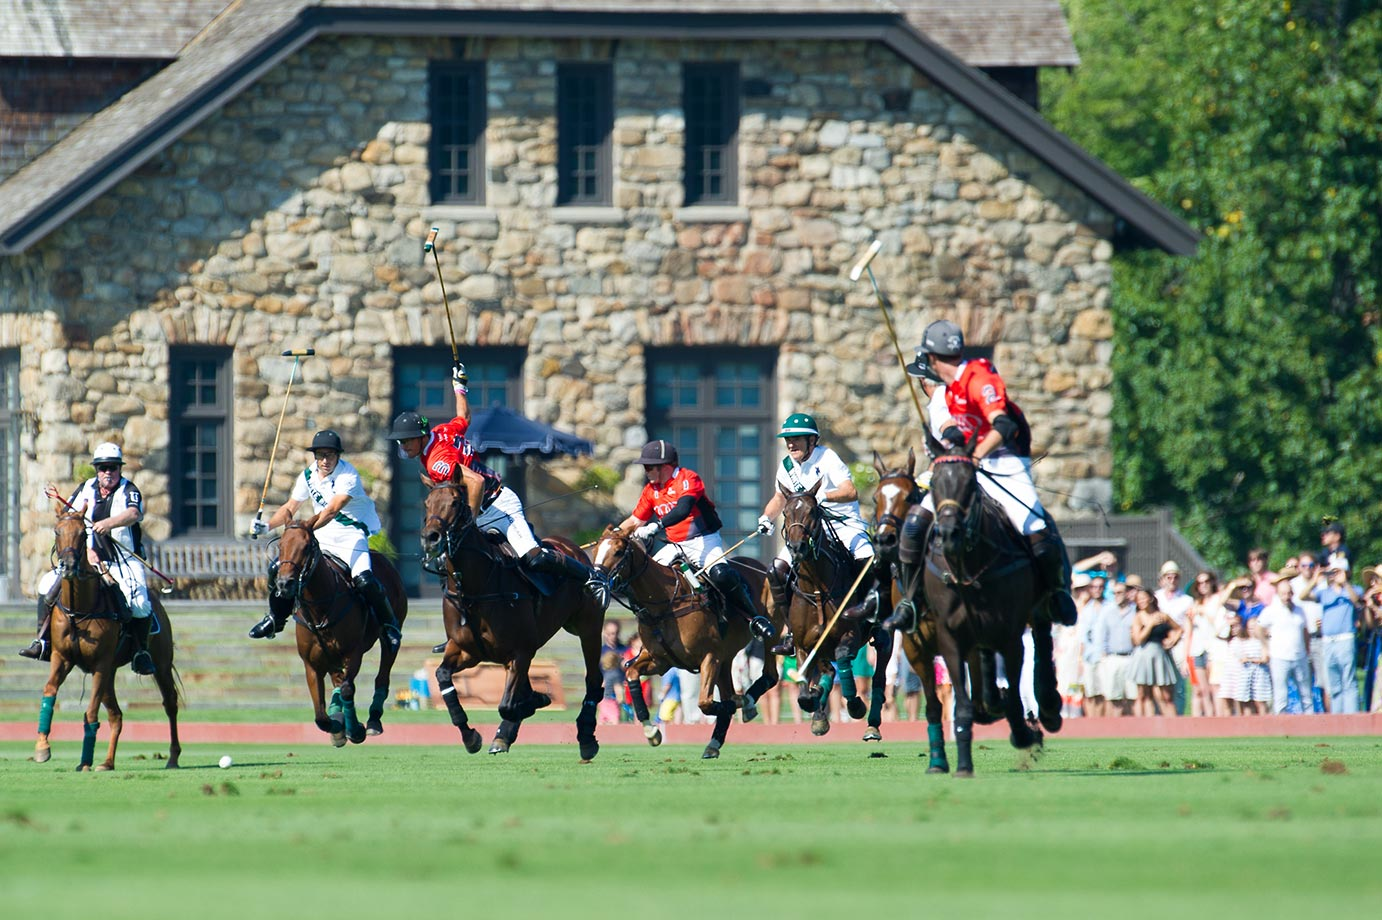 Hilario Ulloa, Nic Roldan, Marc Ganzi, Peter Brant, Mariano Aguerre and Juancito Bolloni play the 2015 East Coast Open Final match in front of thousands of spectators and the Brant Foundation Art Study Center.